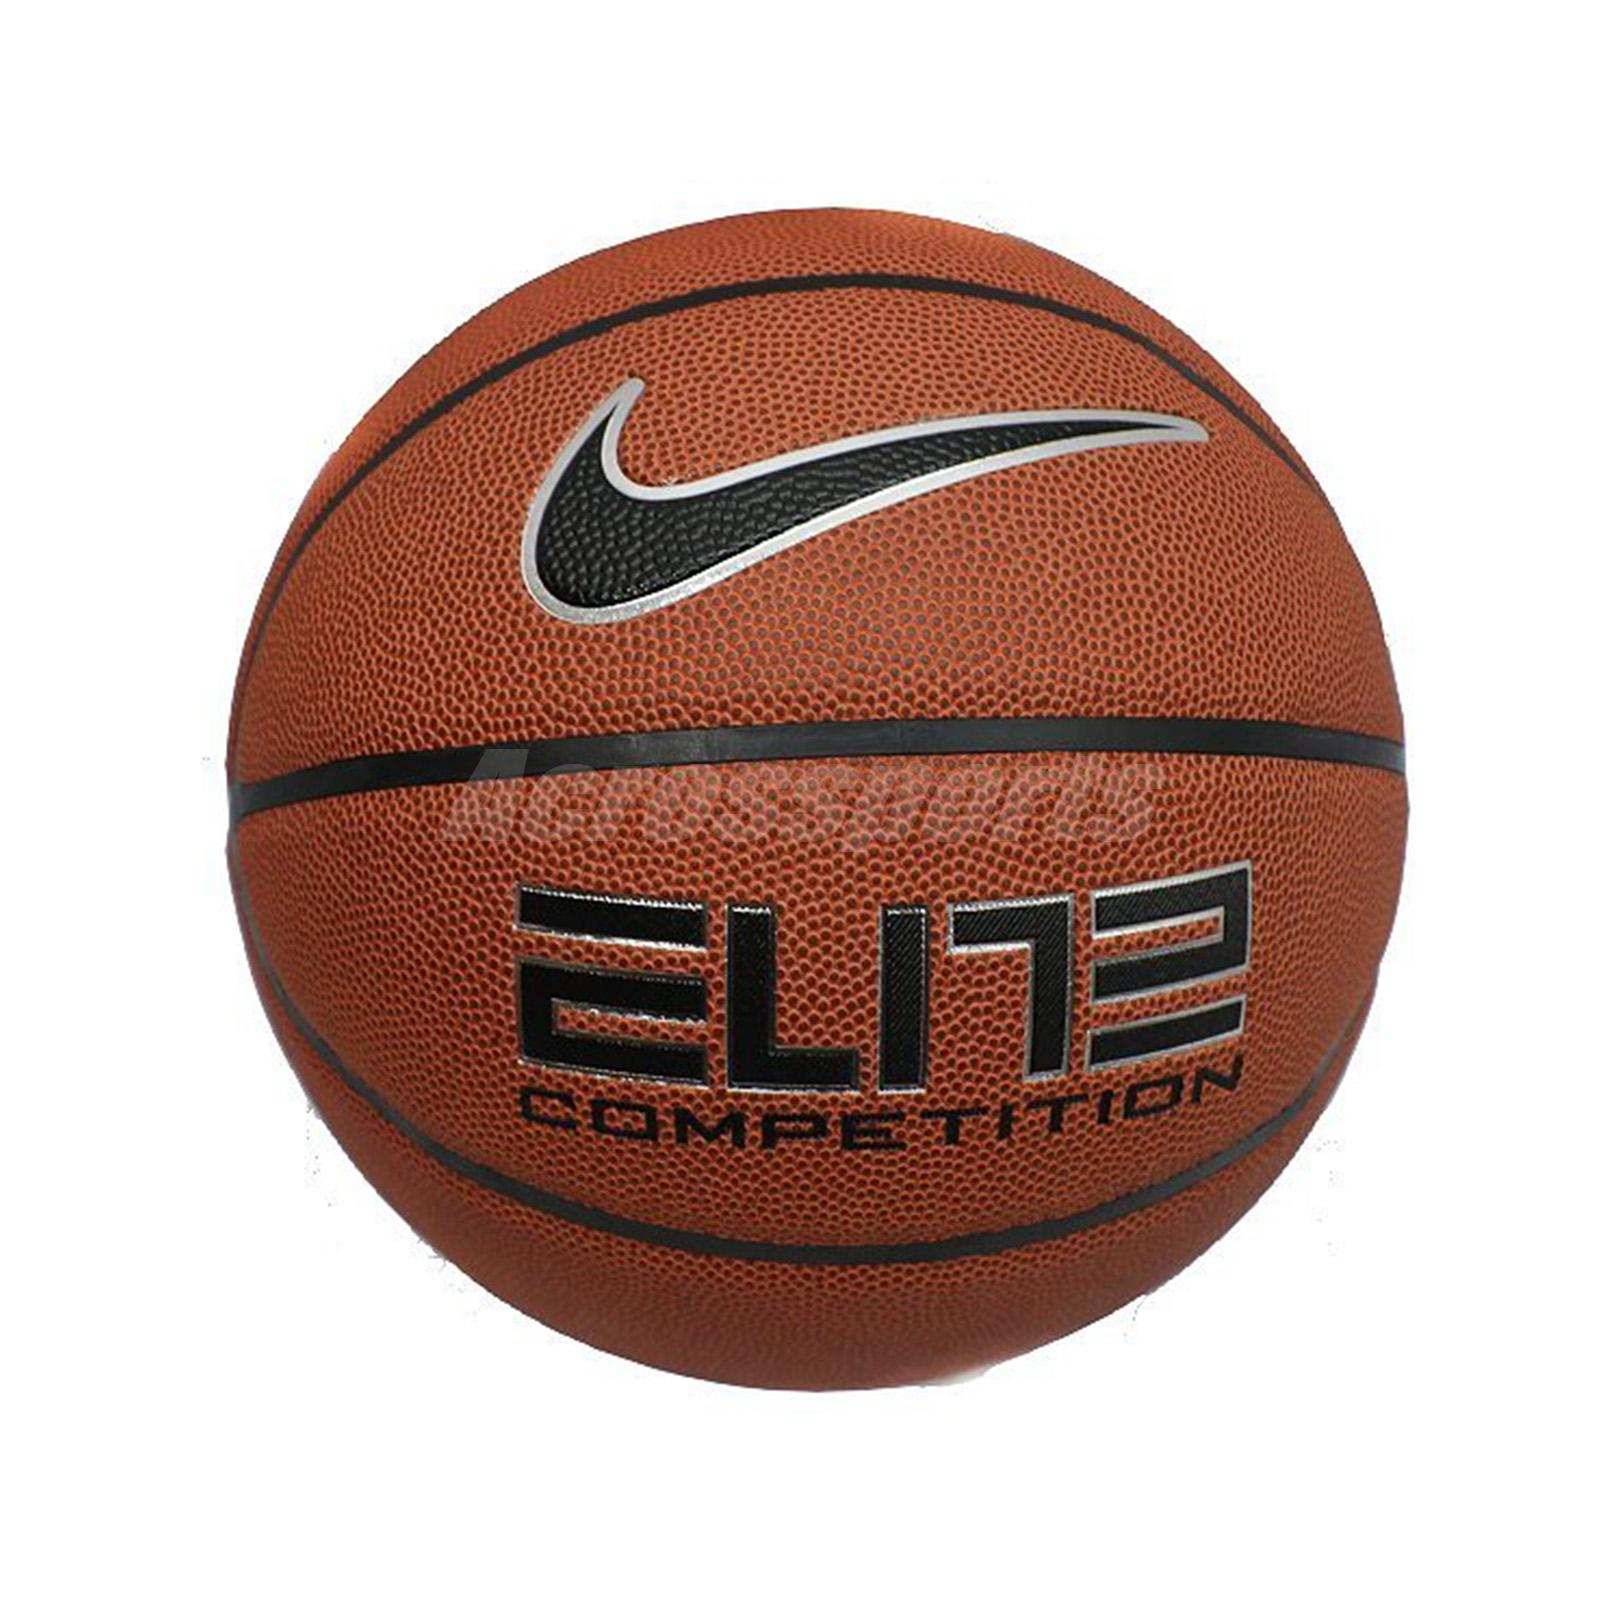 Nike Elite Competition 2.0 II Outdoor Indoor All Court Basketball Ball Size  7 482591e36e4b5